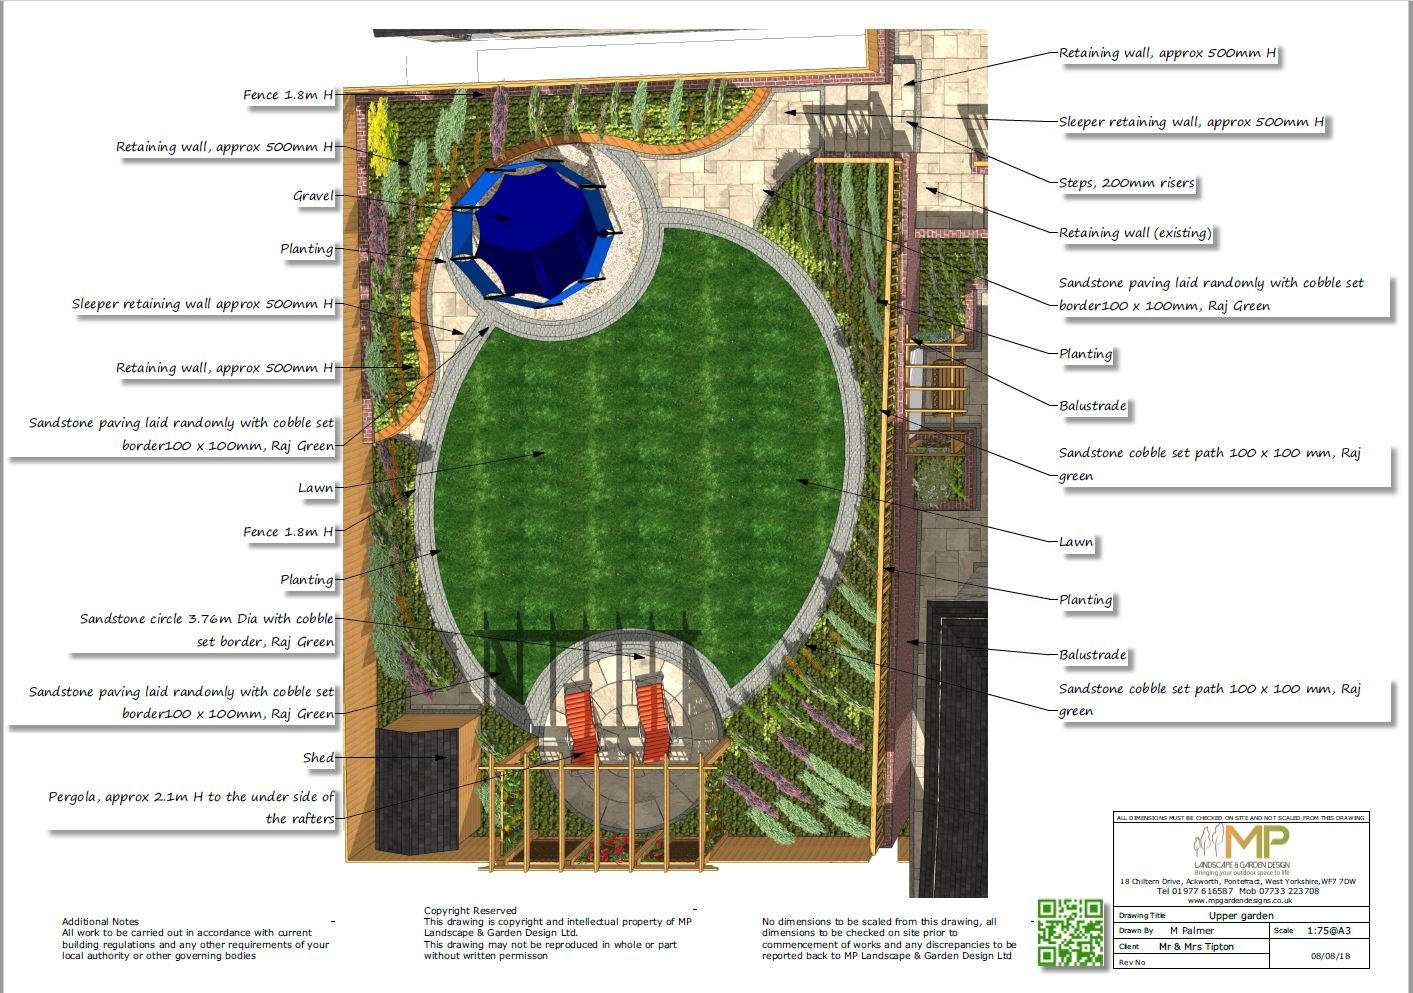 Garden layout plans for a property in Castleford.